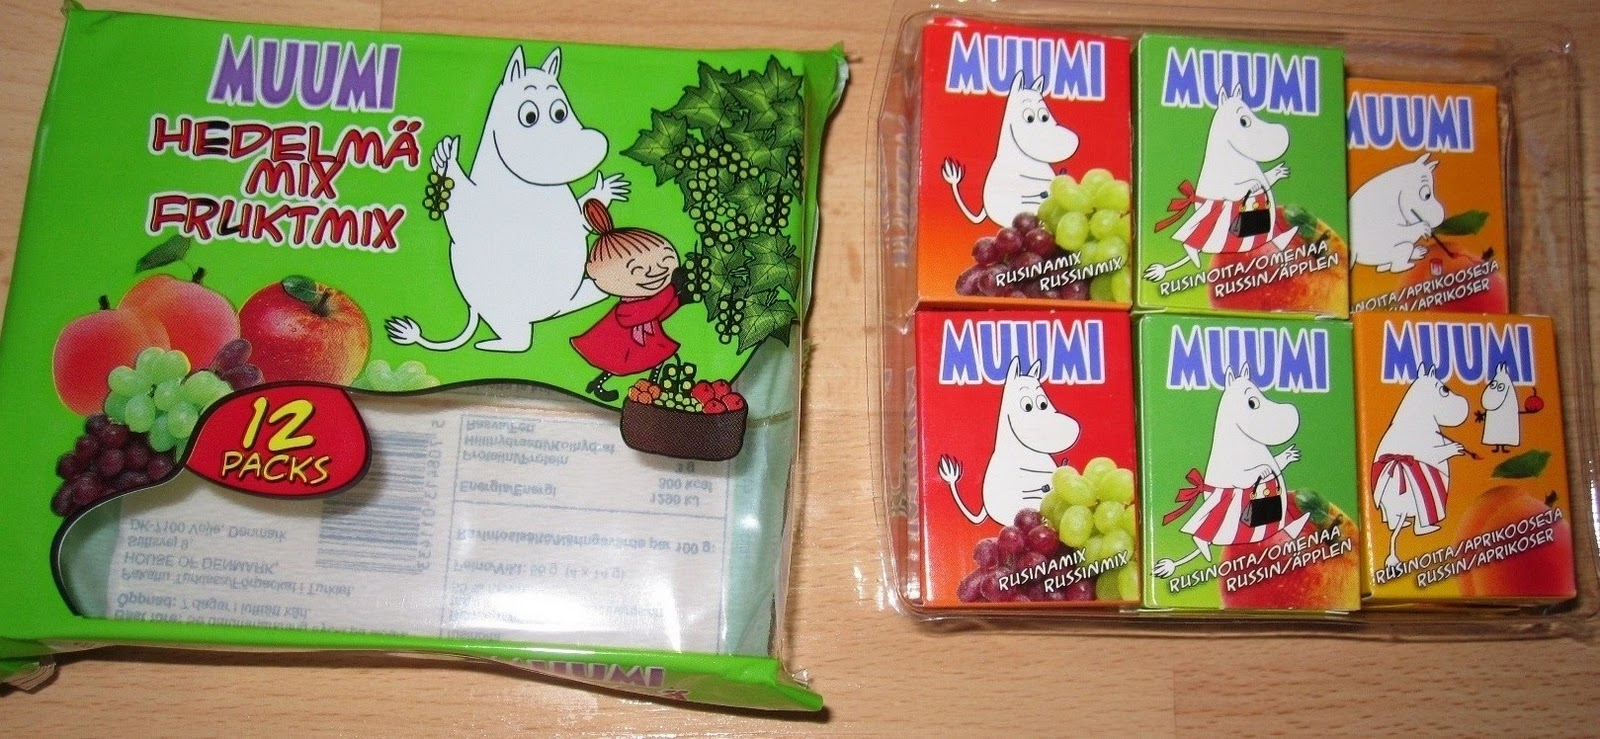 how to get to moomin world from helsinki